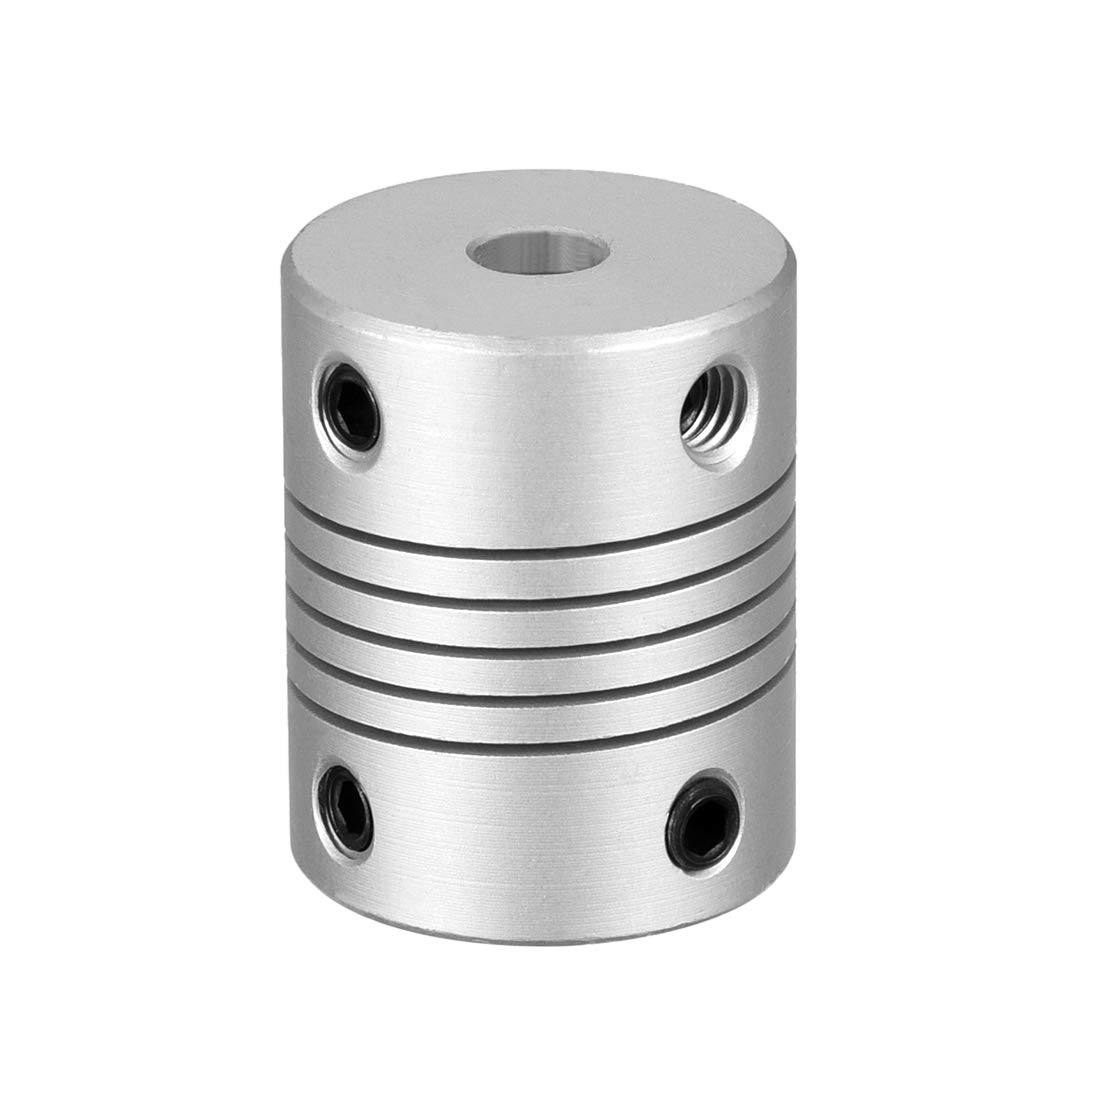 sourcing map 6.35mm to 8mm Aluminum Alloy Shaft Coupling Flexible Coupler Motor Connector Joint L25xD19 Silver